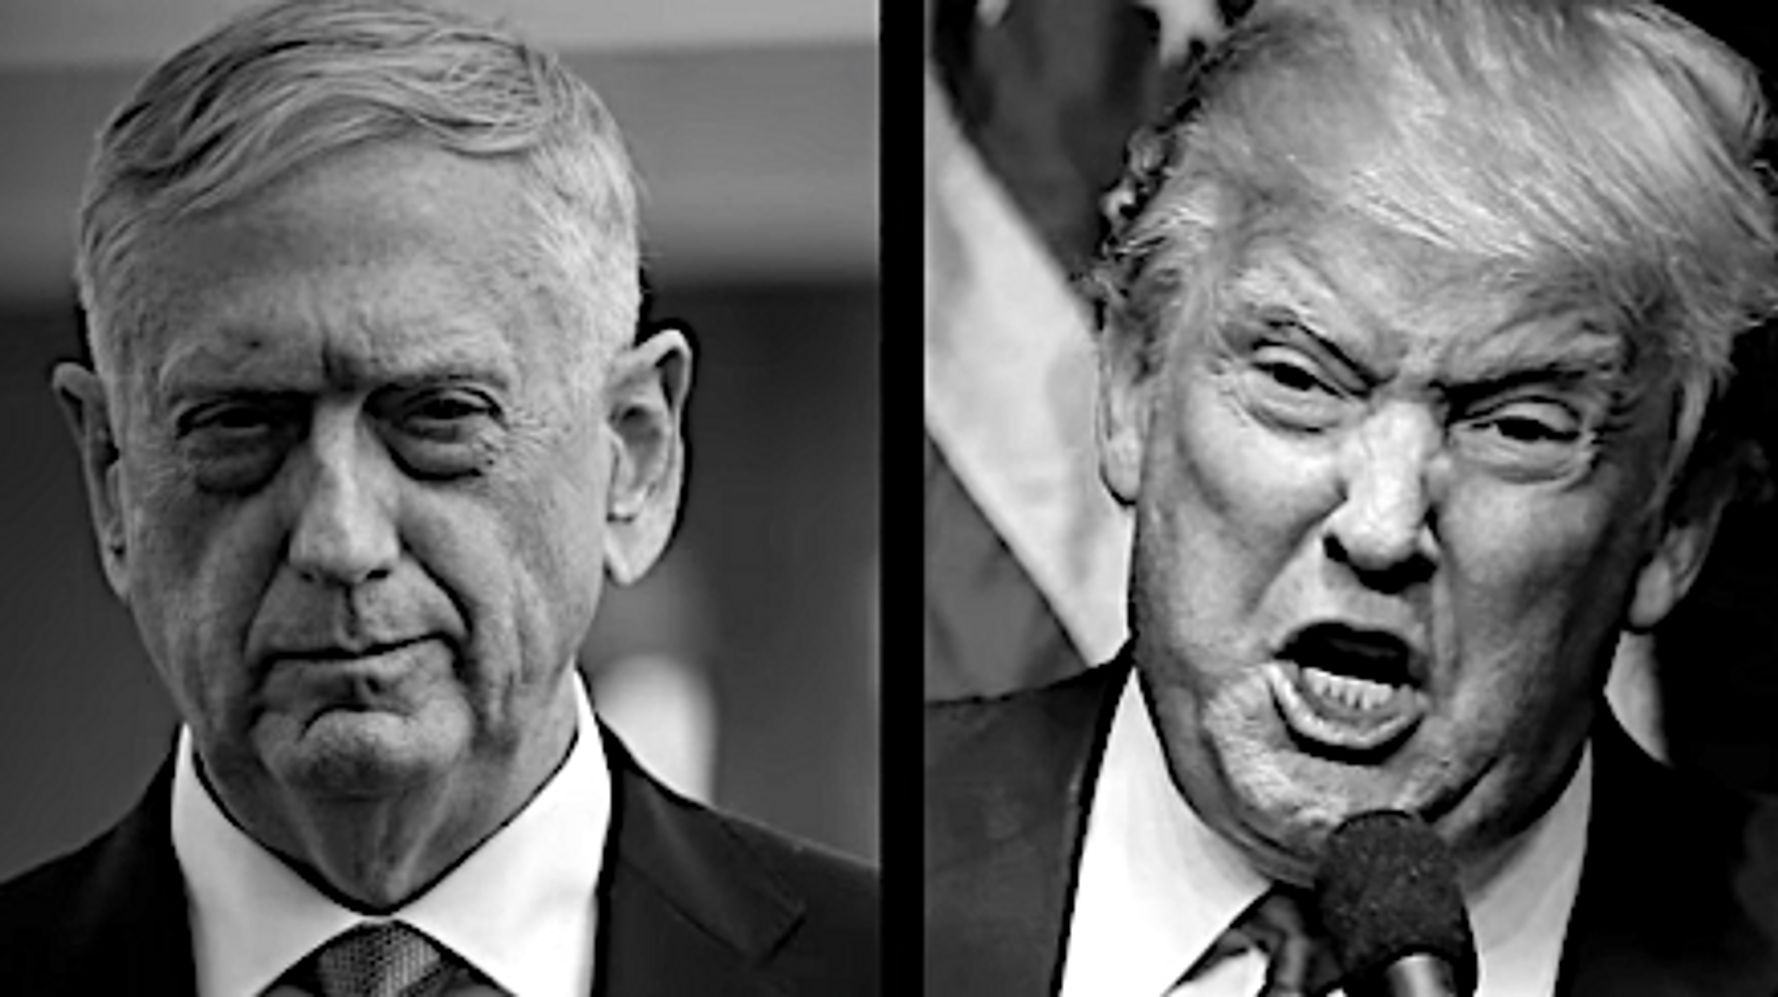 'A Coward And A Commander': Attack On Trump By Jim Mattis Stars In Lacerating GOP Ad